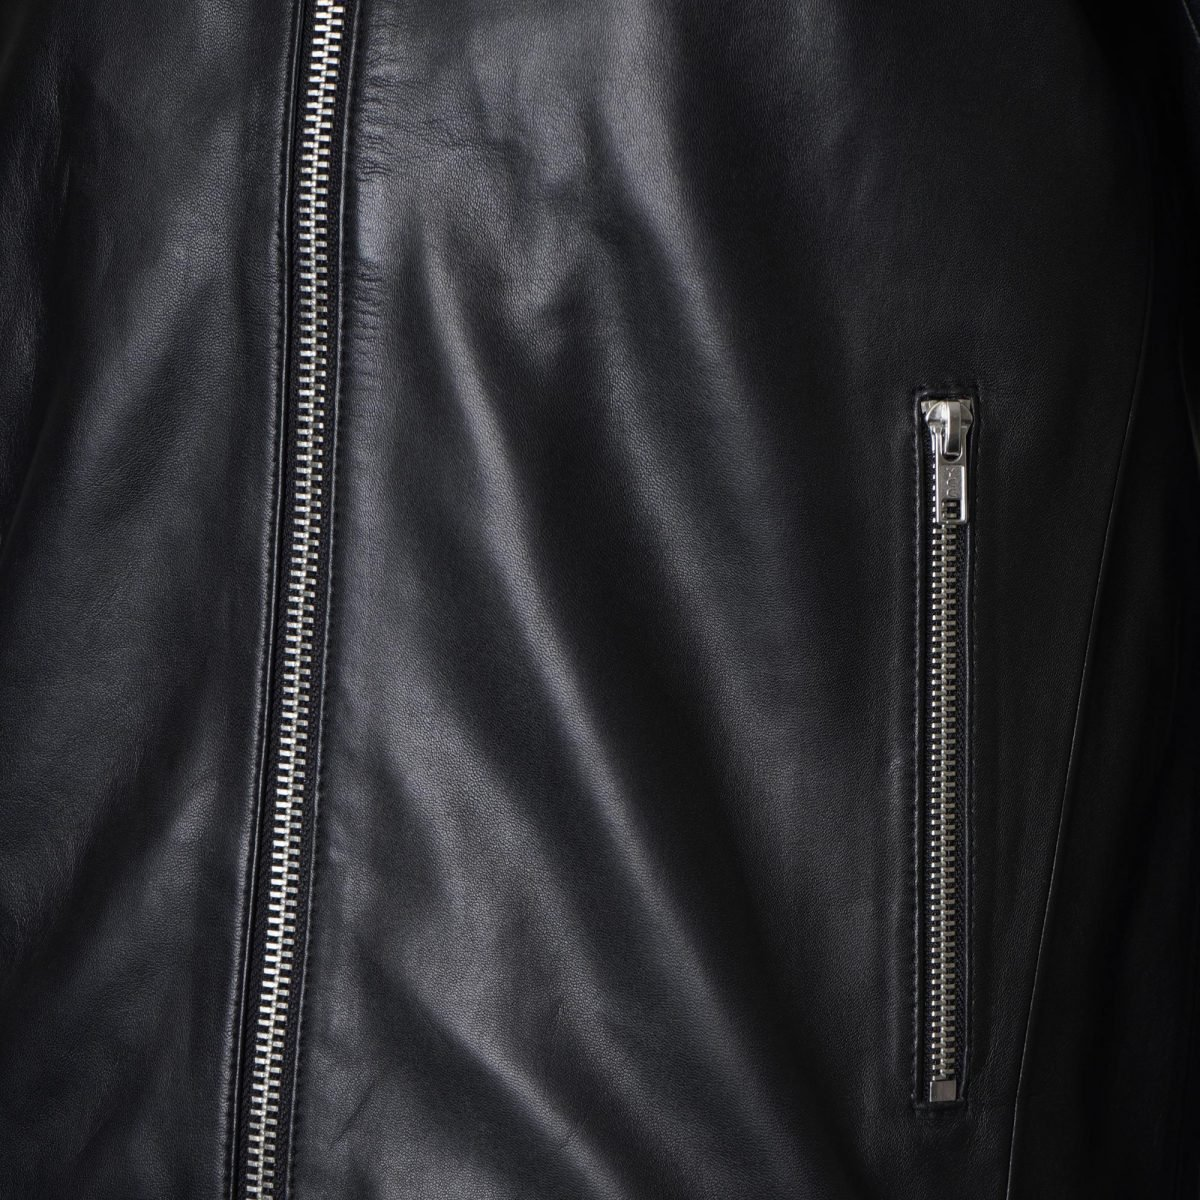 Image displays a close up shot of the silver hardward on the SHR_324 leather trucker jacket for men.